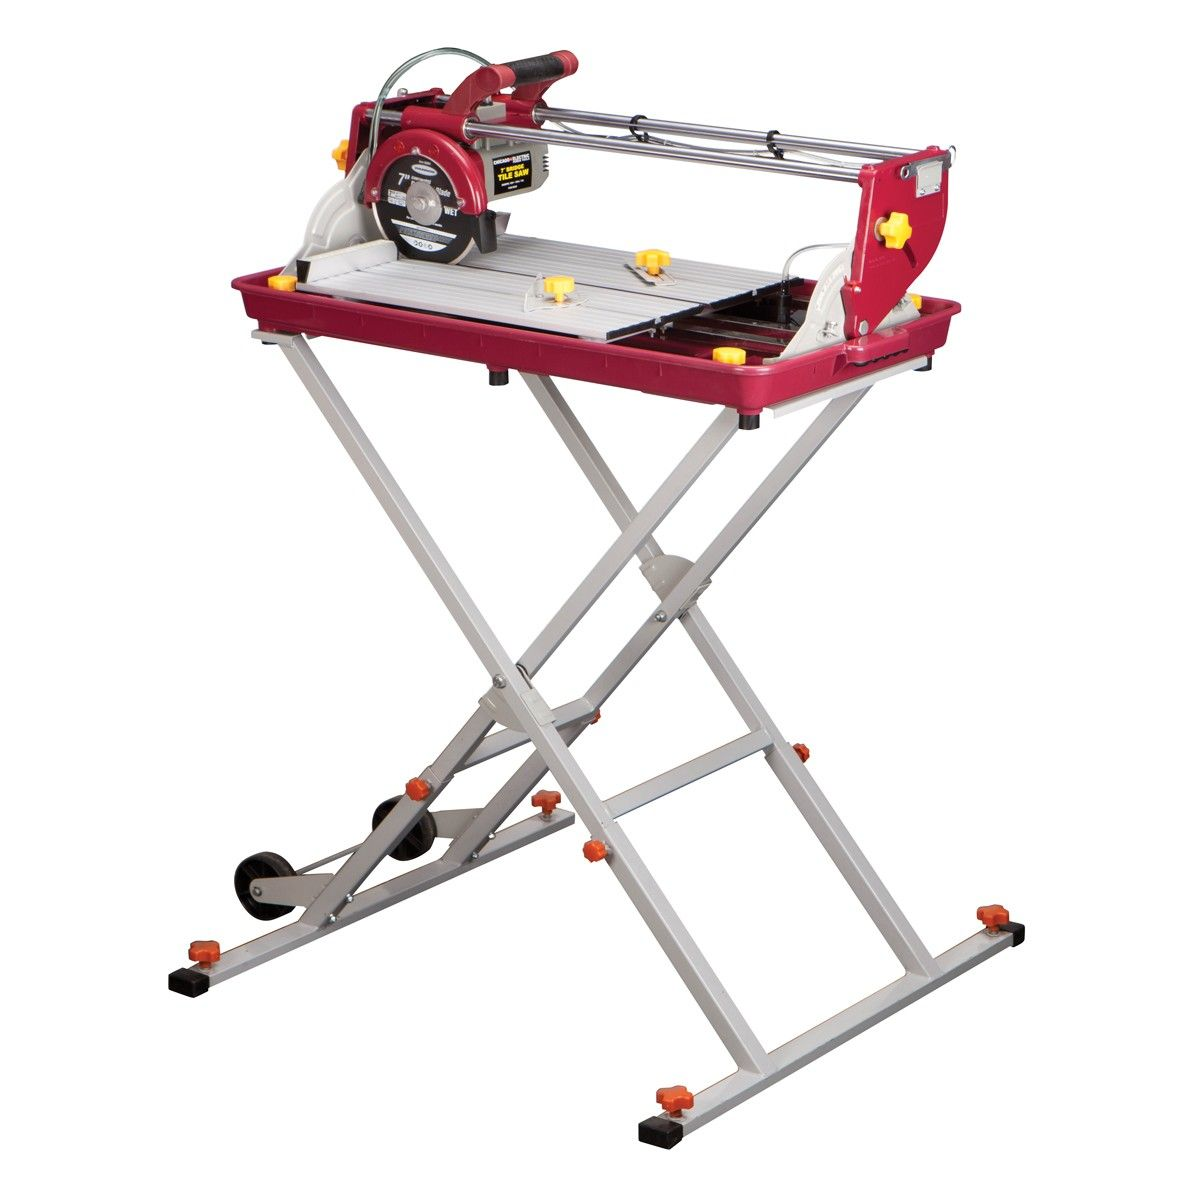 Diamondback 7 In Heavy Duty Wet Tile Saw With Sliding Table For 239 99 In 2020 Sliding Table Harbor Freight Tools Tile Saw